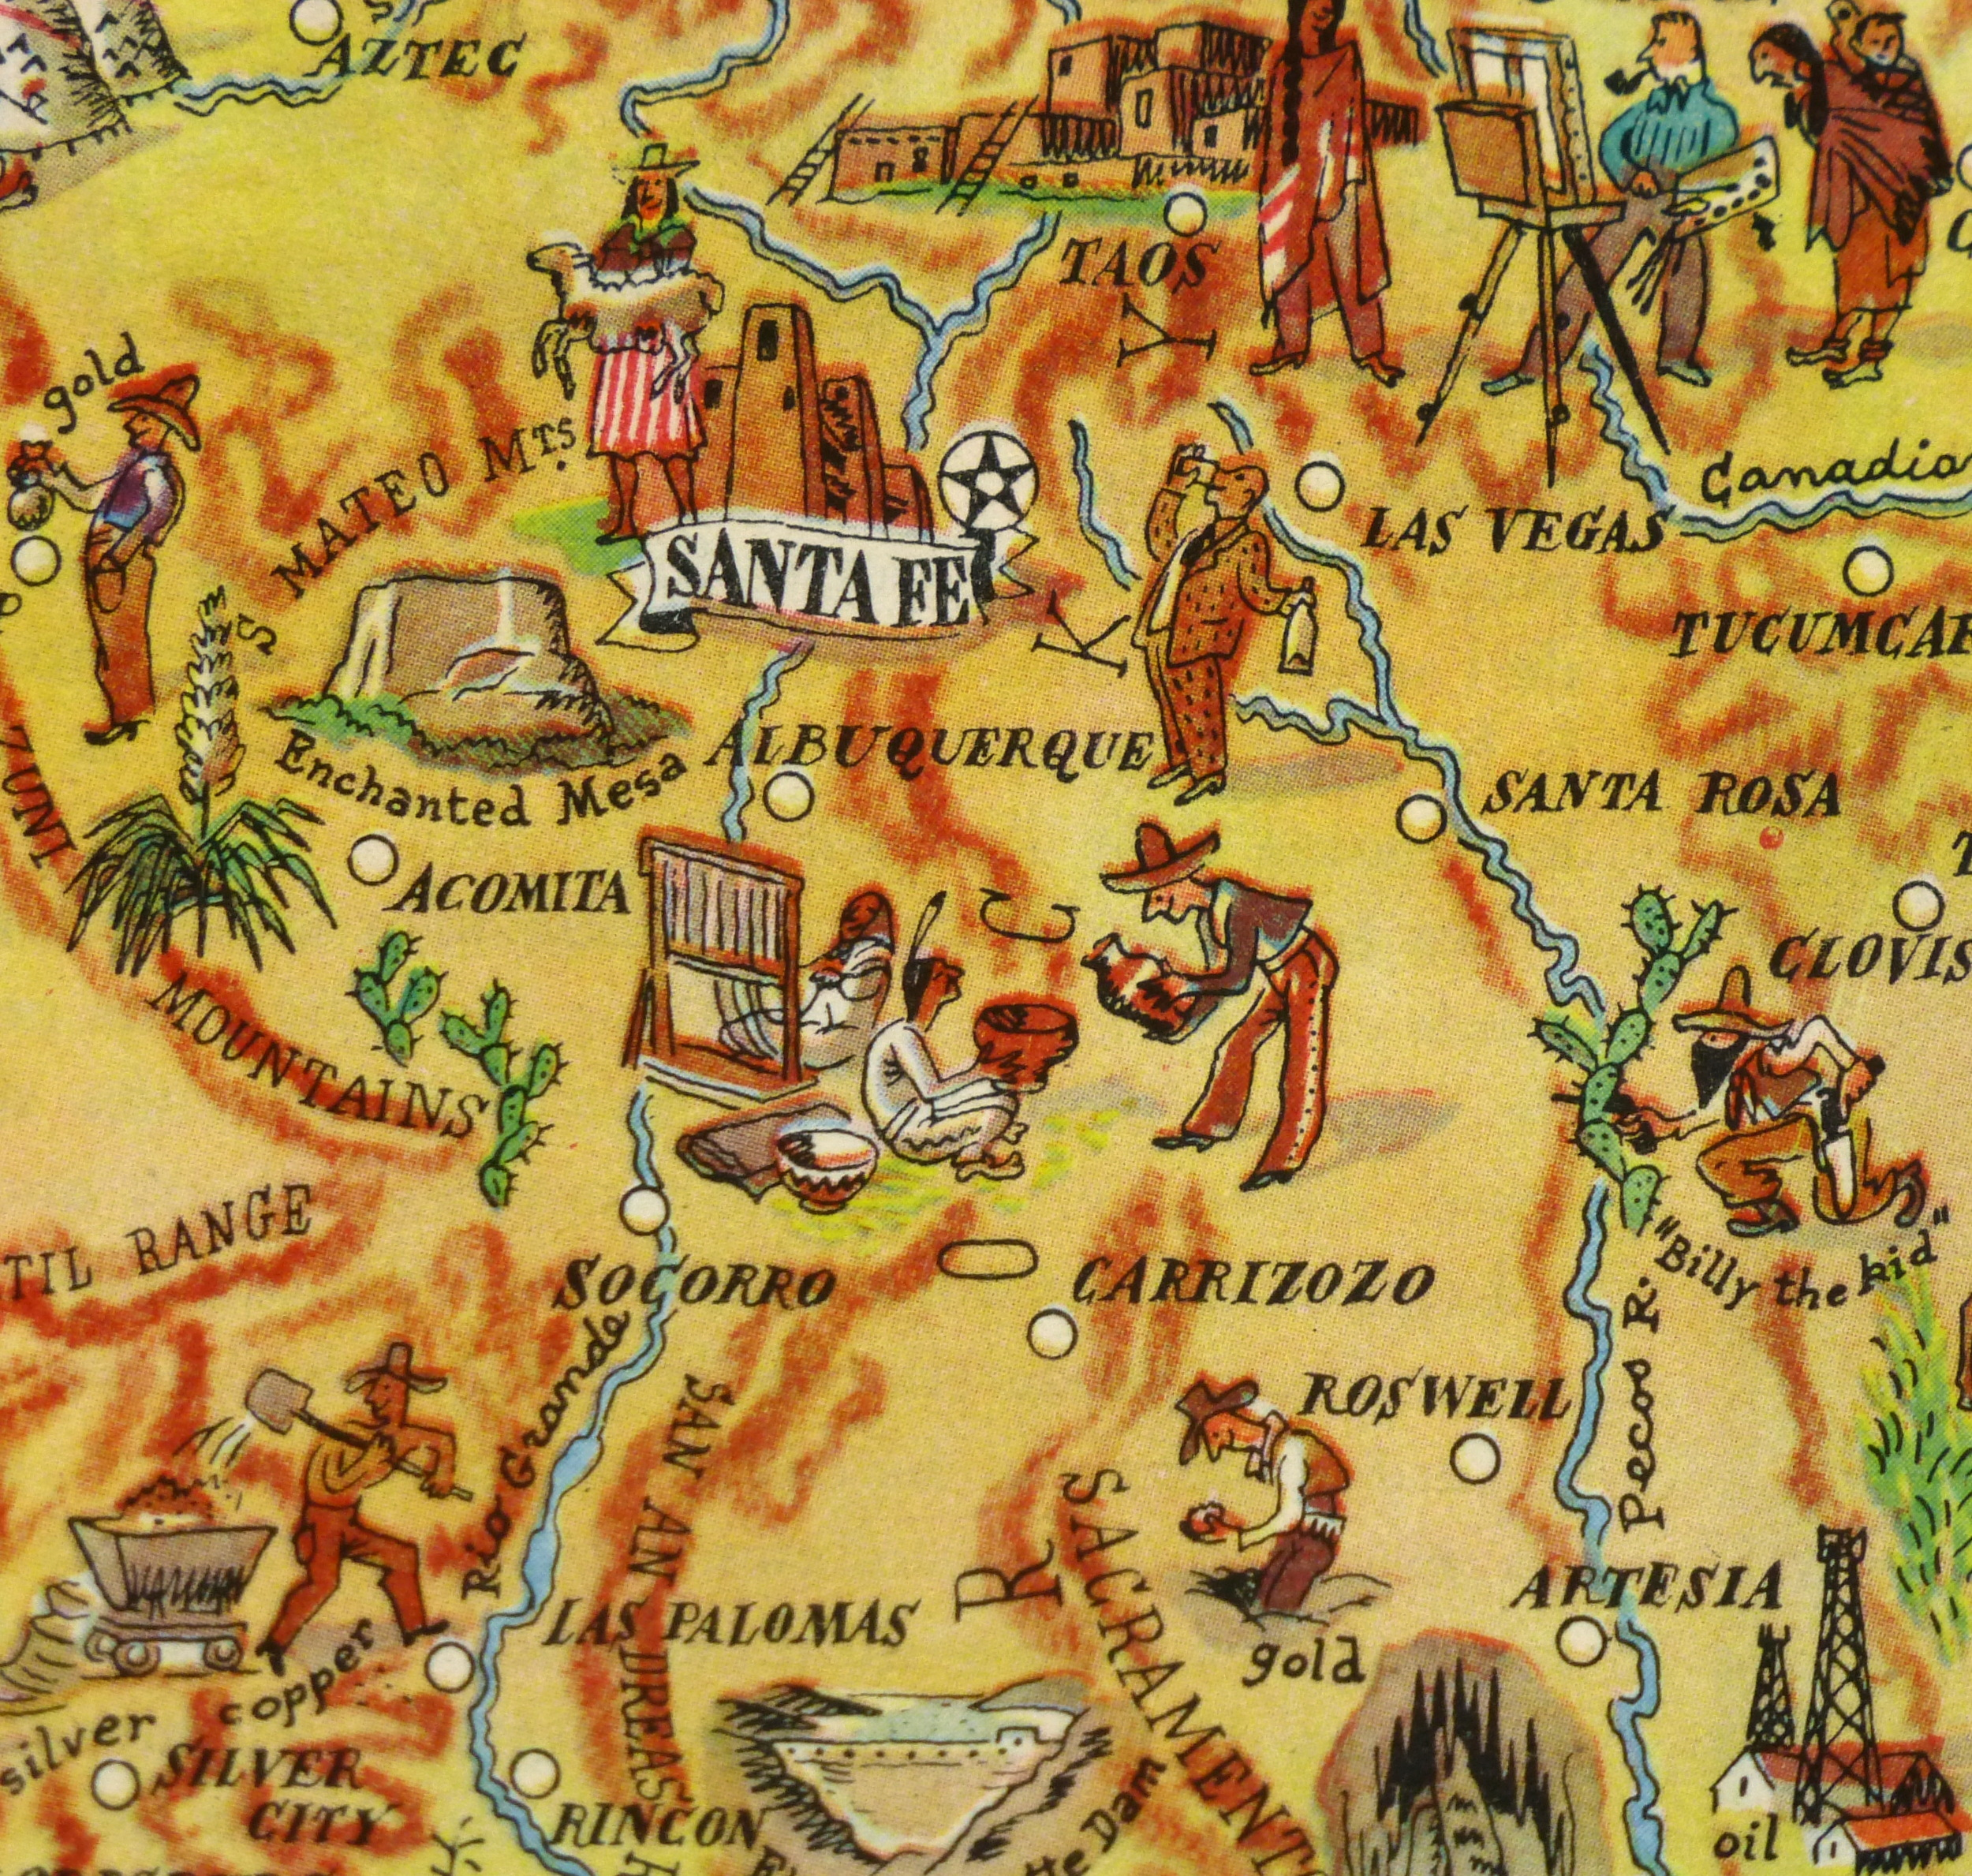 New Mexico Pictorial Map, 1946-detail-6247K